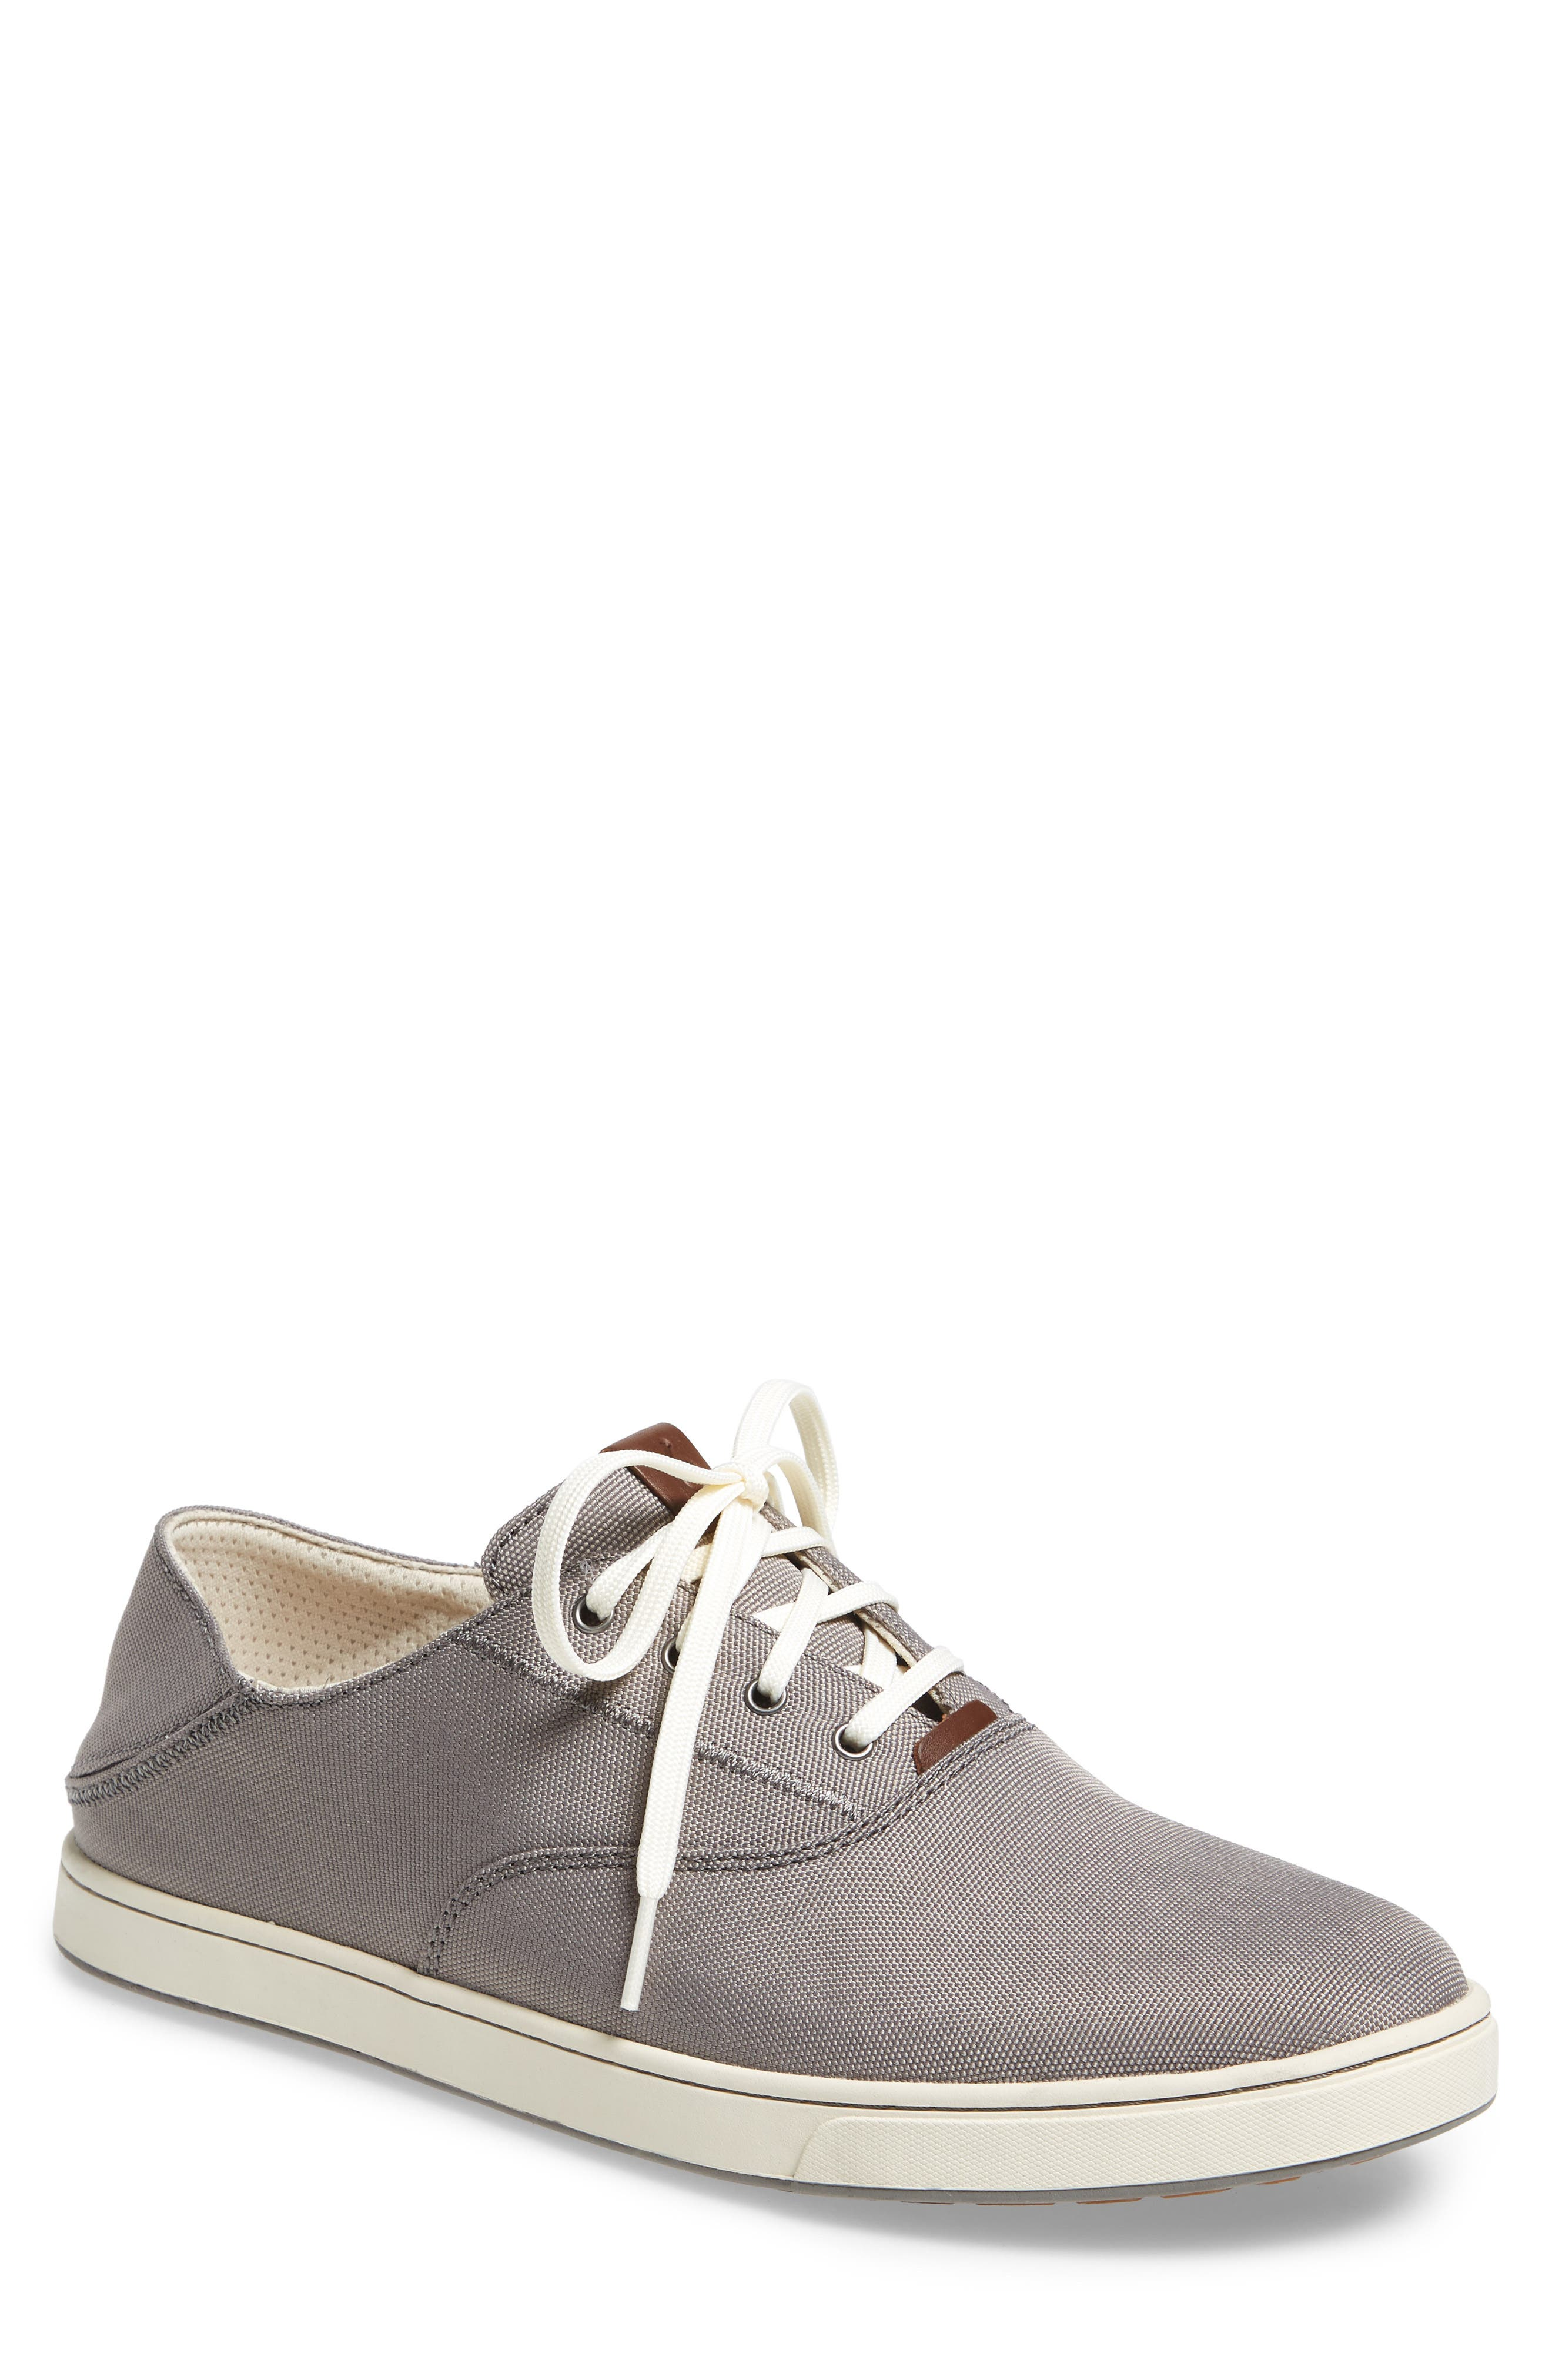 Kahu Collapsible Lace-Up Sneaker,                             Alternate thumbnail 2, color,                             055